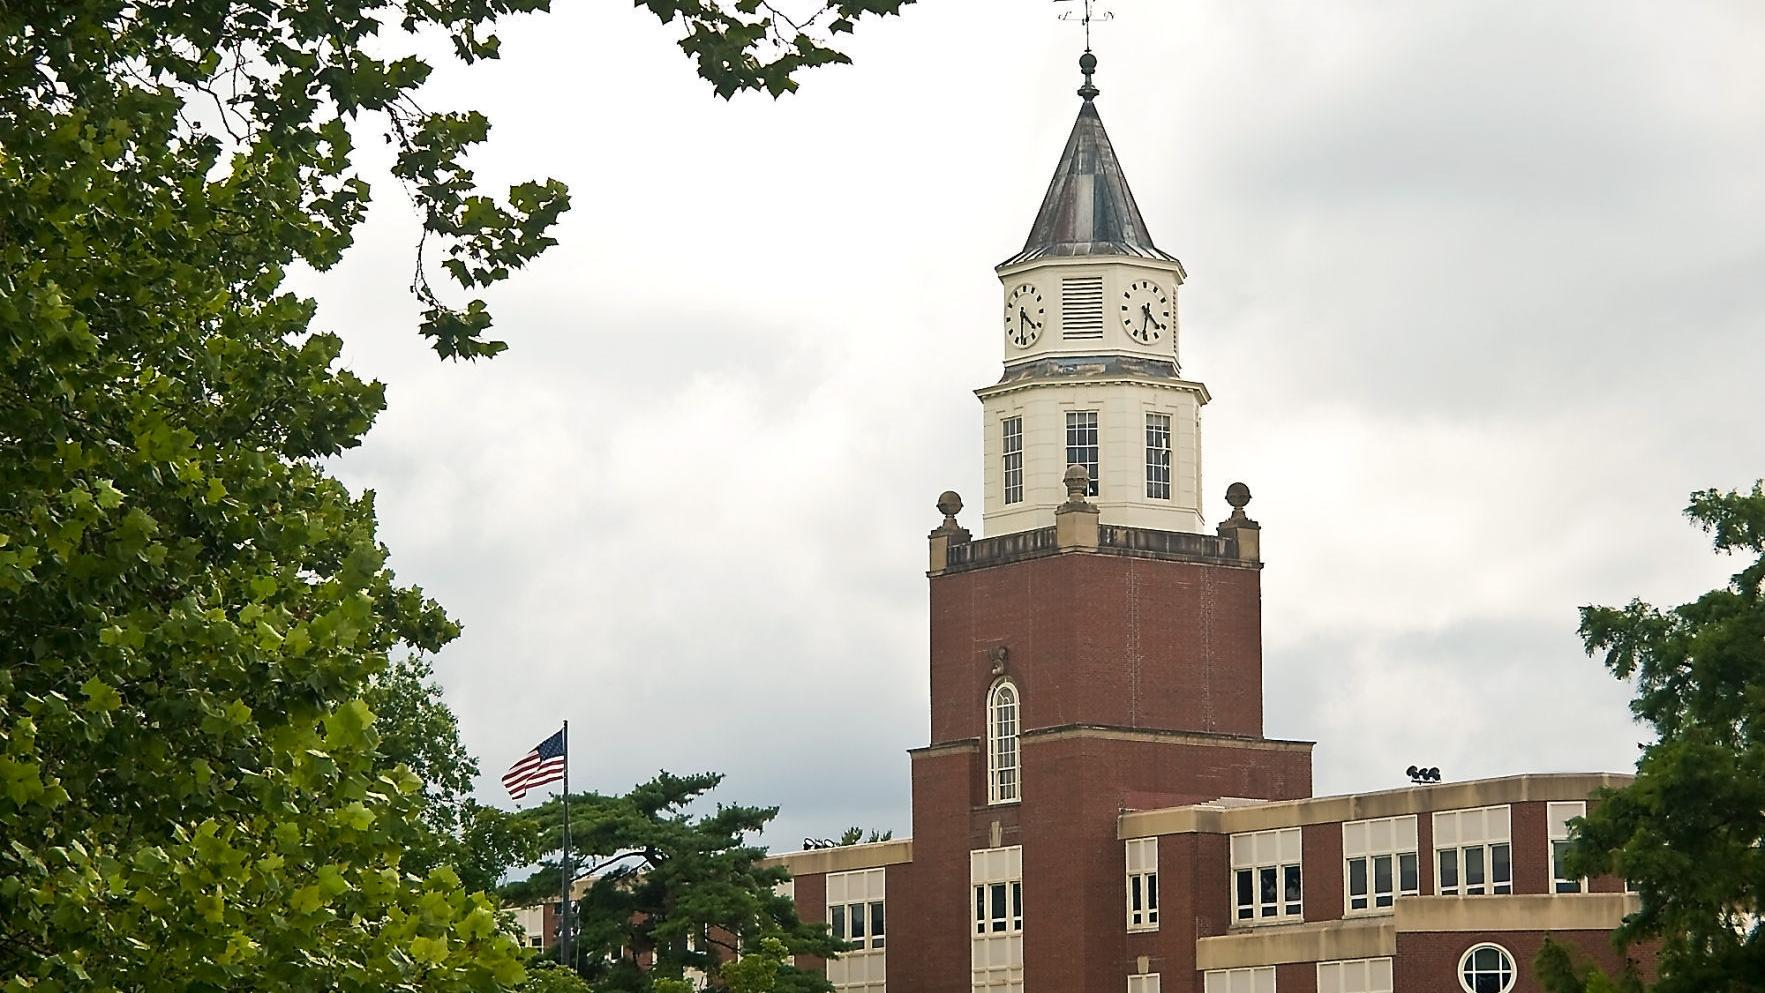 SIU awarded over $4.3 million from Rebuild Illinois for infrastructure upgrades